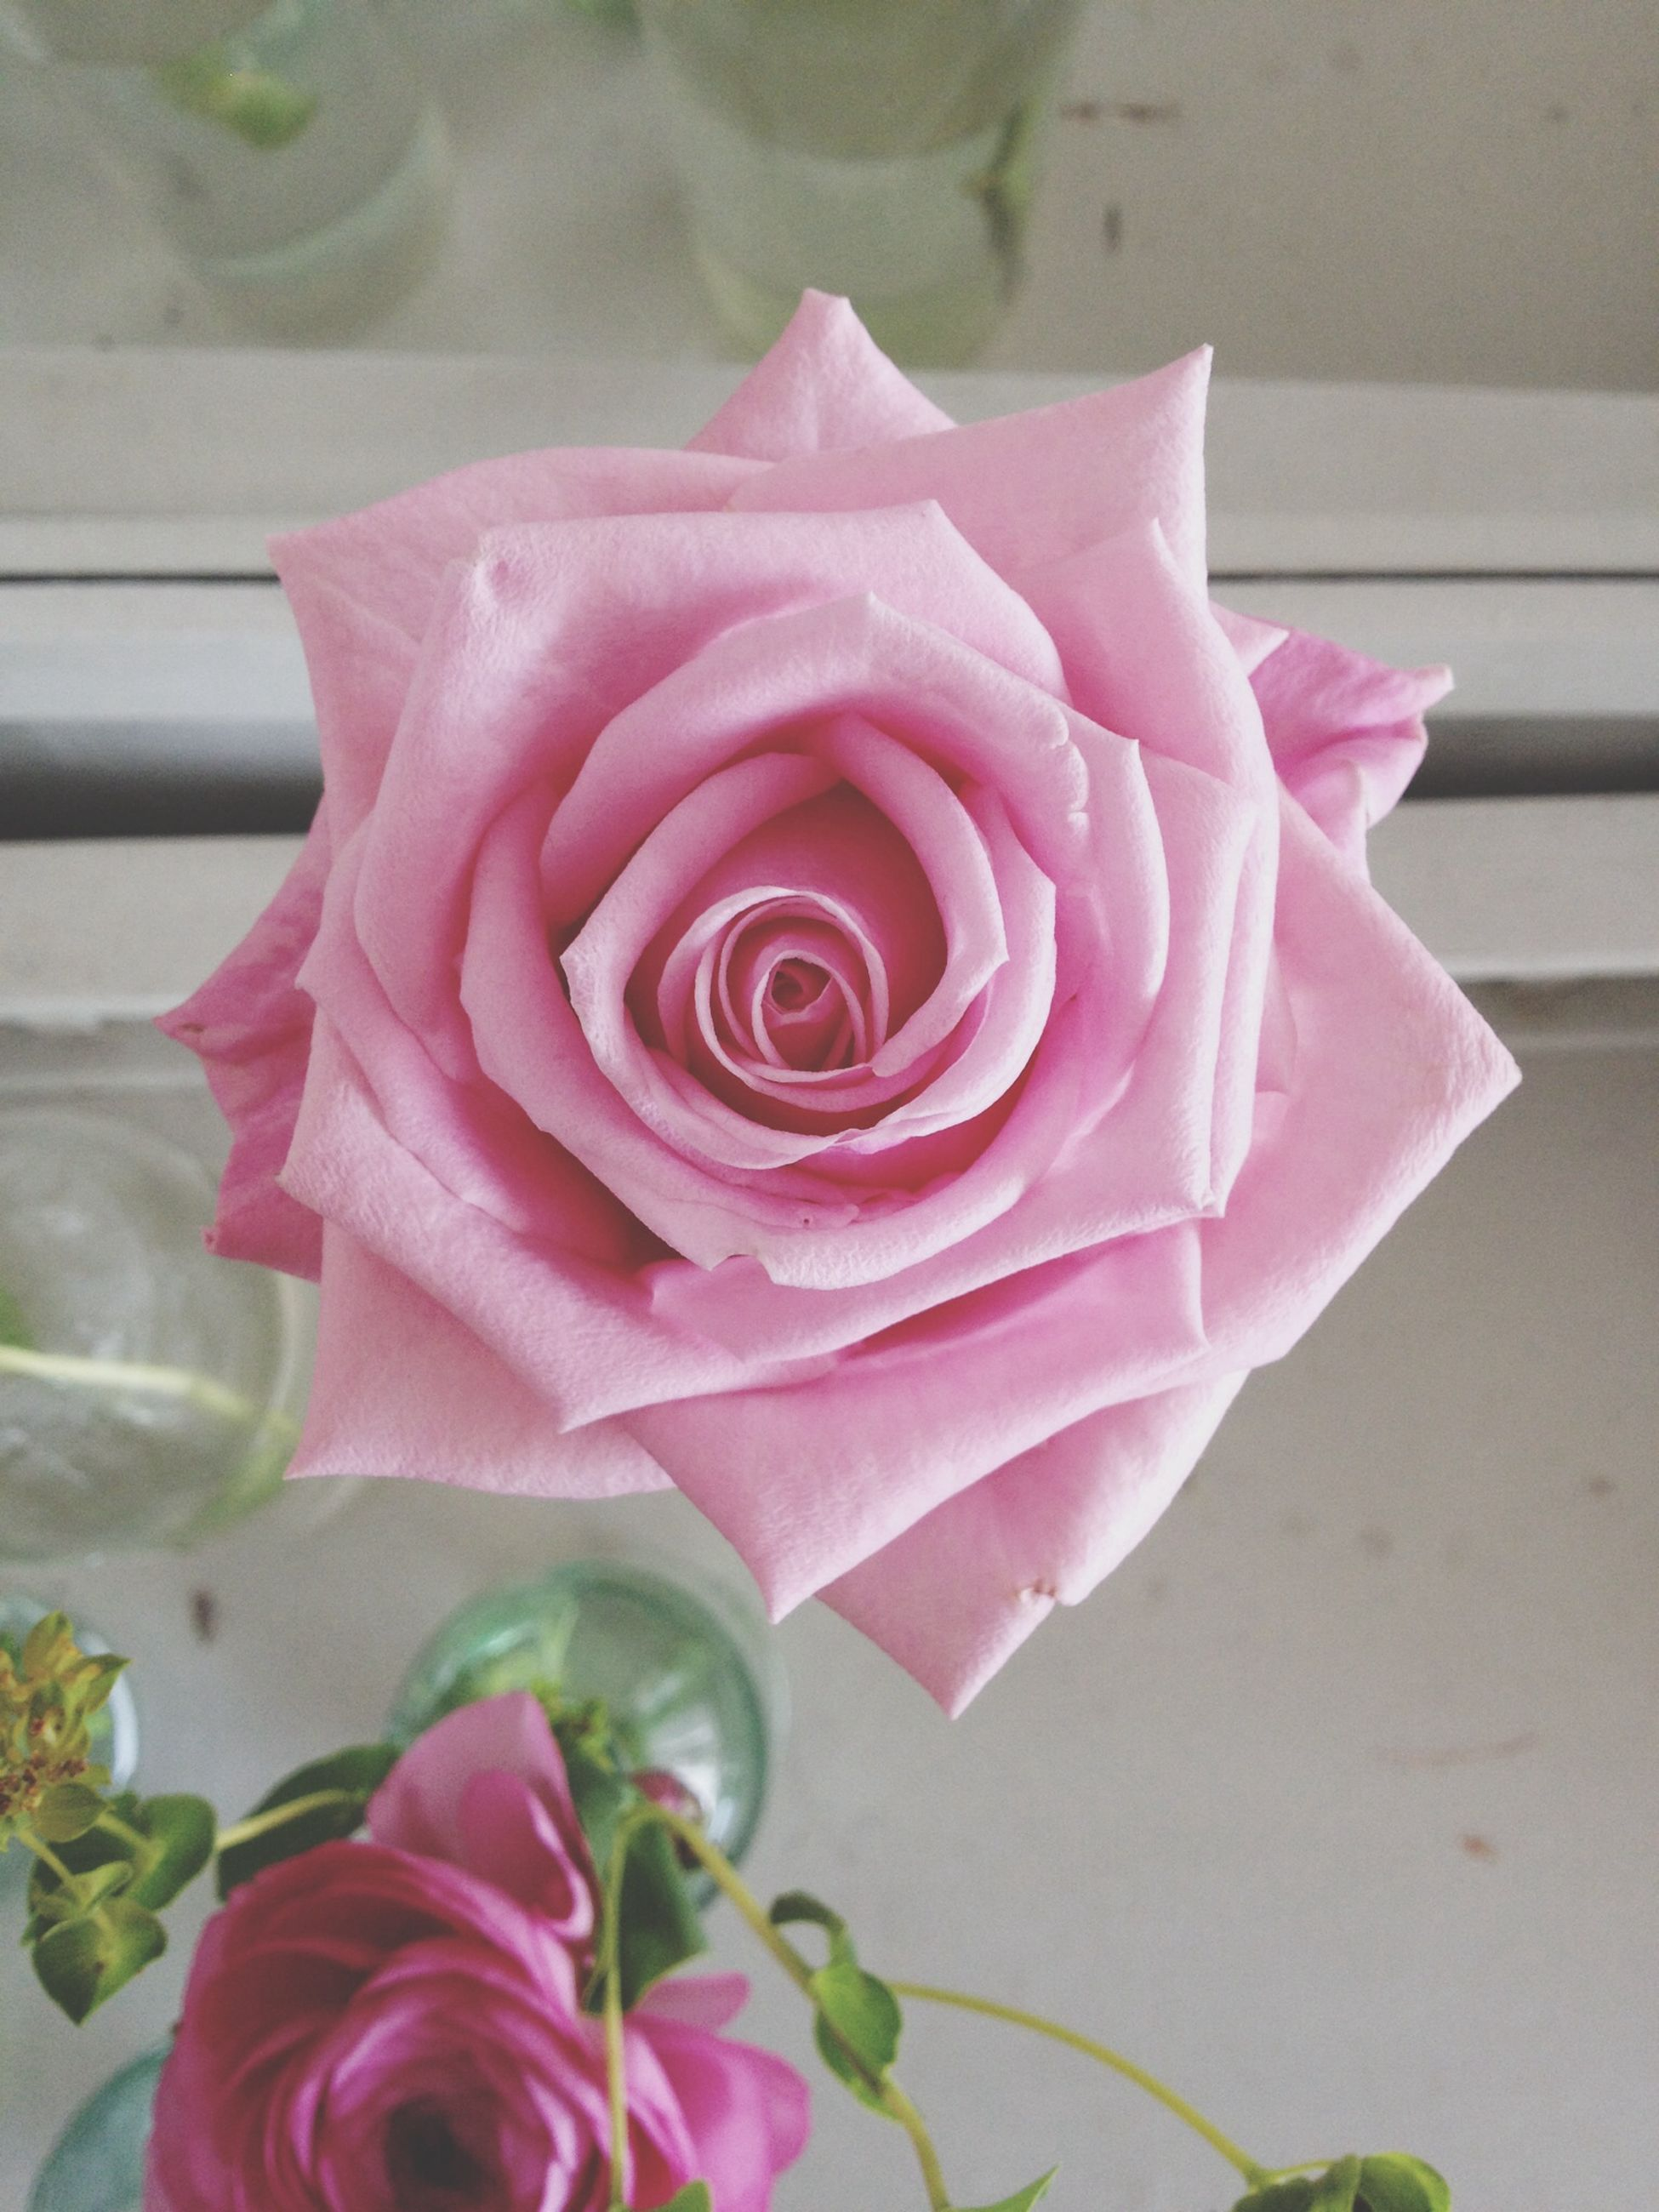 flower, petal, flower head, pink color, rose - flower, fragility, freshness, beauty in nature, single flower, close-up, blooming, nature, rose, pink, water, focus on foreground, growth, plant, day, in bloom